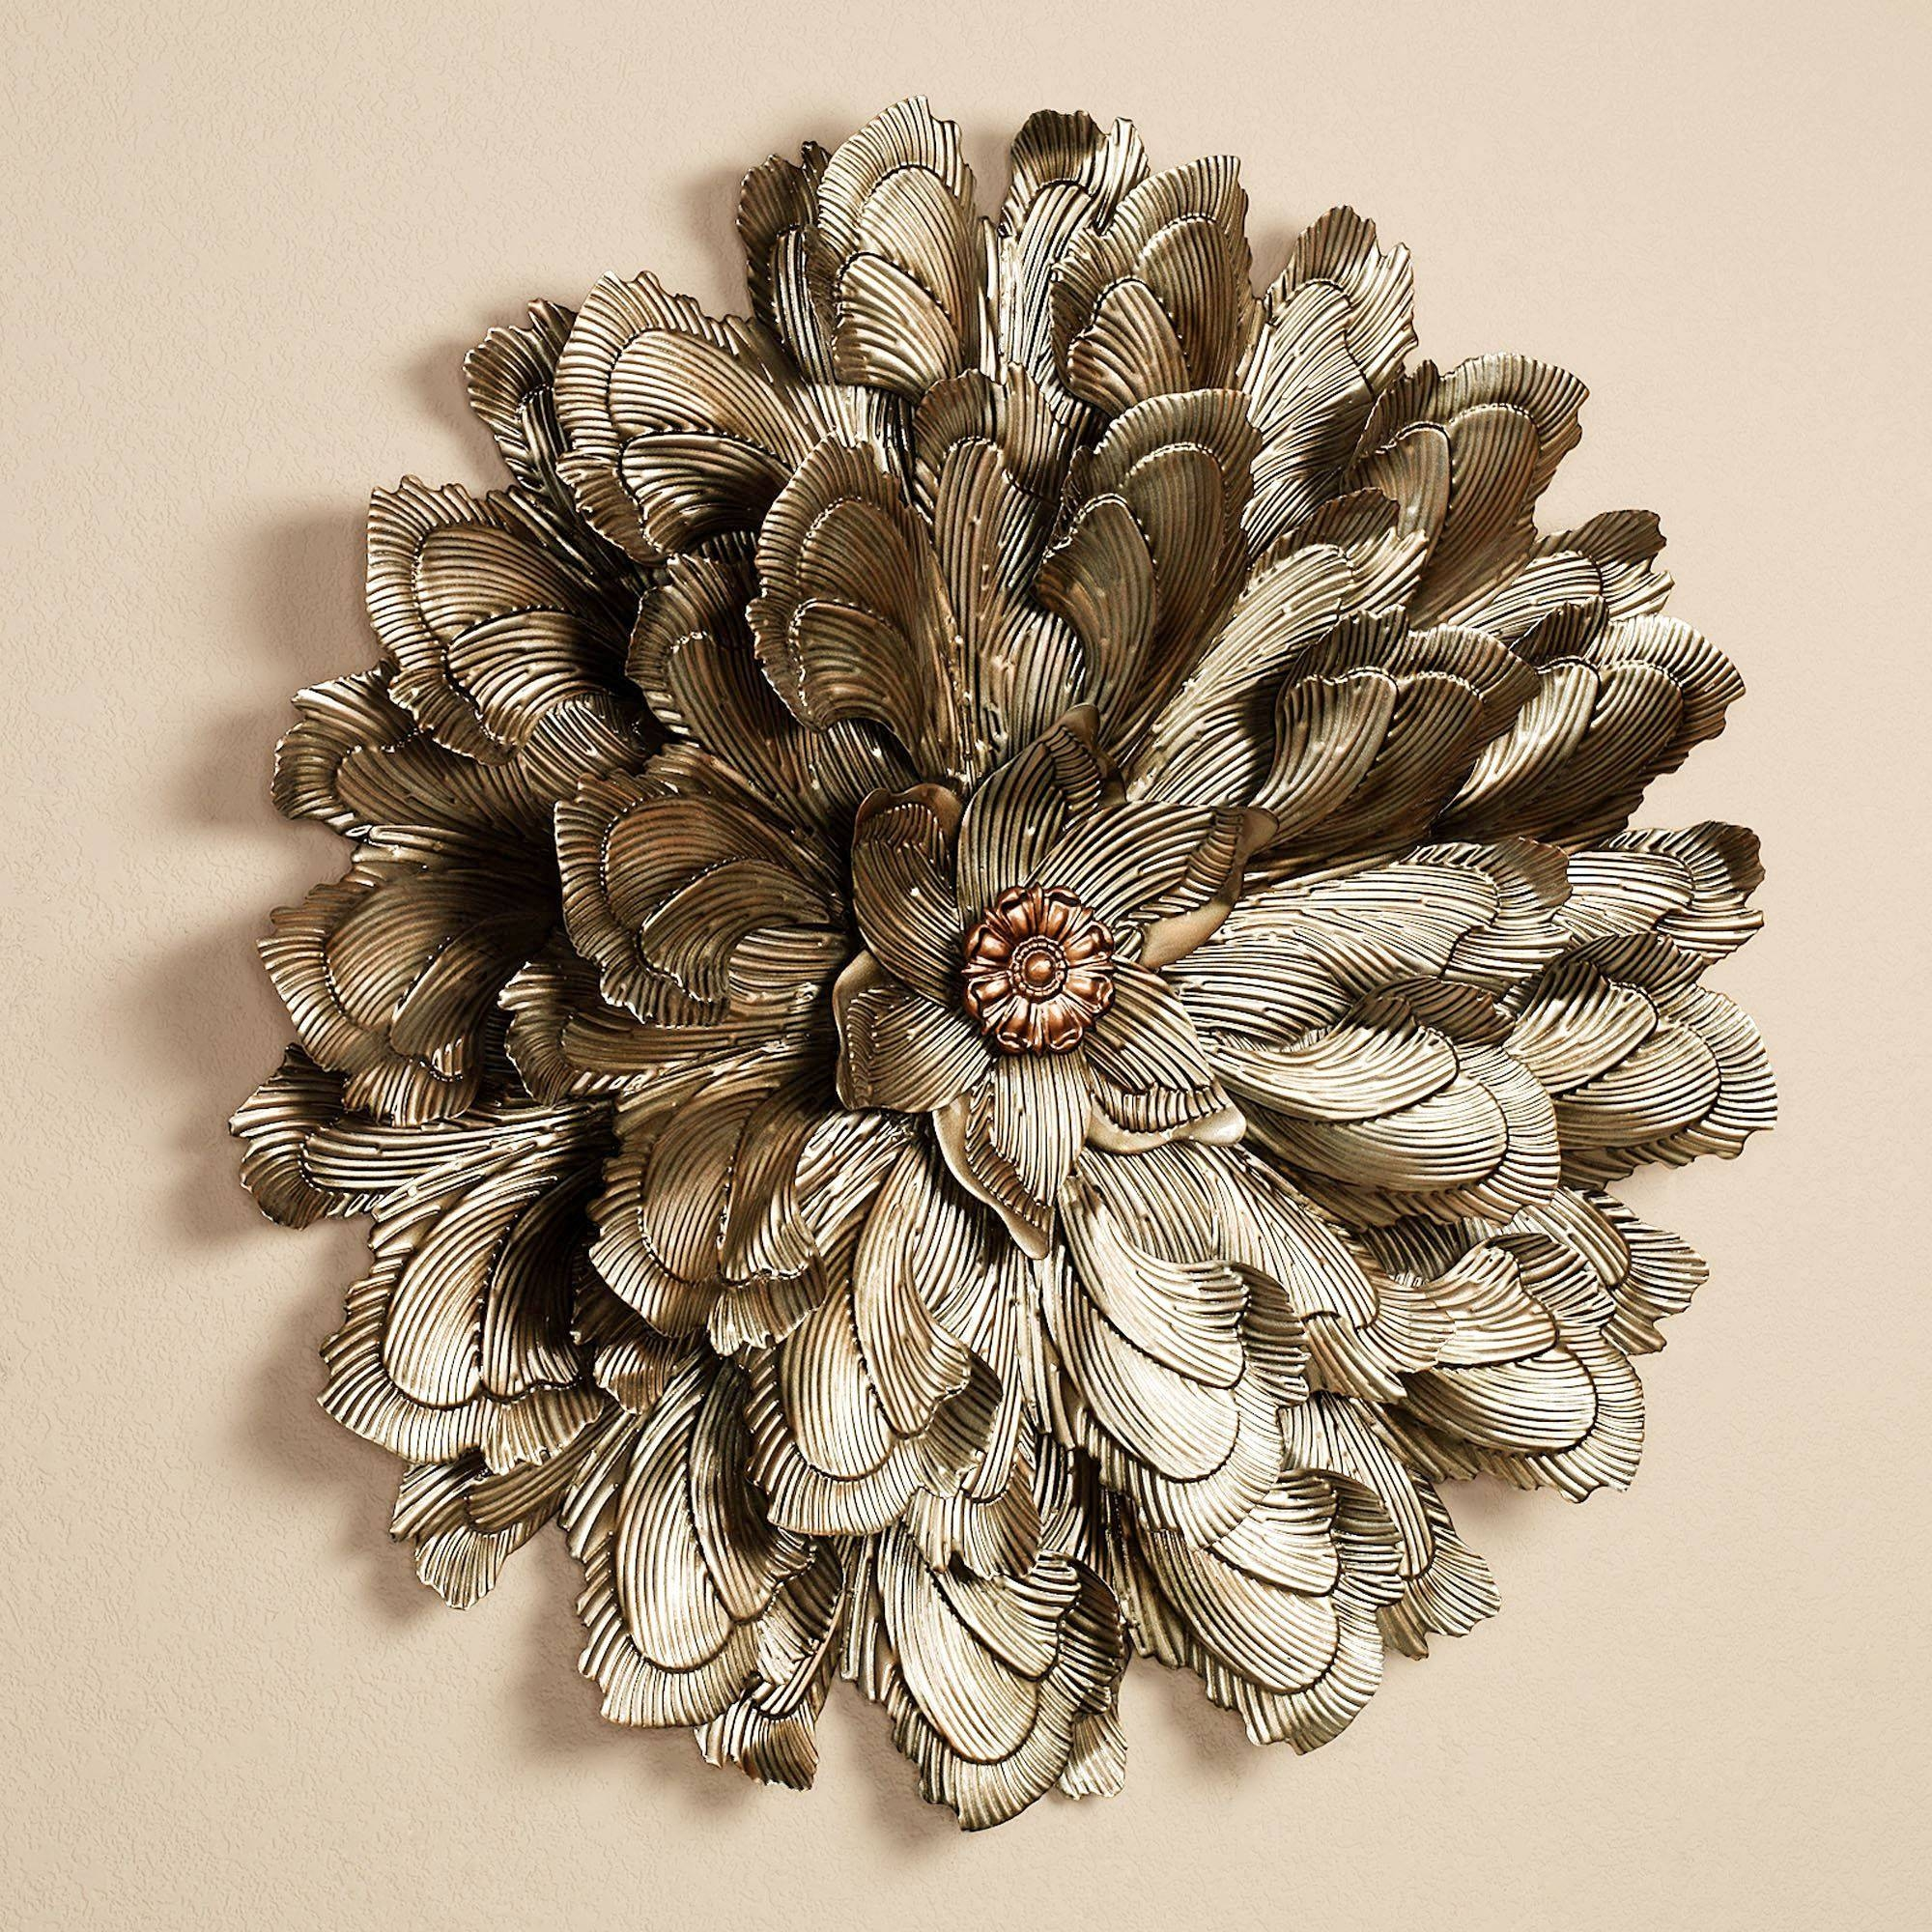 41 Silver Metal Wall Art Flowers, Home Metal Wall Art Wall Decor Throughout Current Large Metal Wall Art Decor (View 16 of 20)